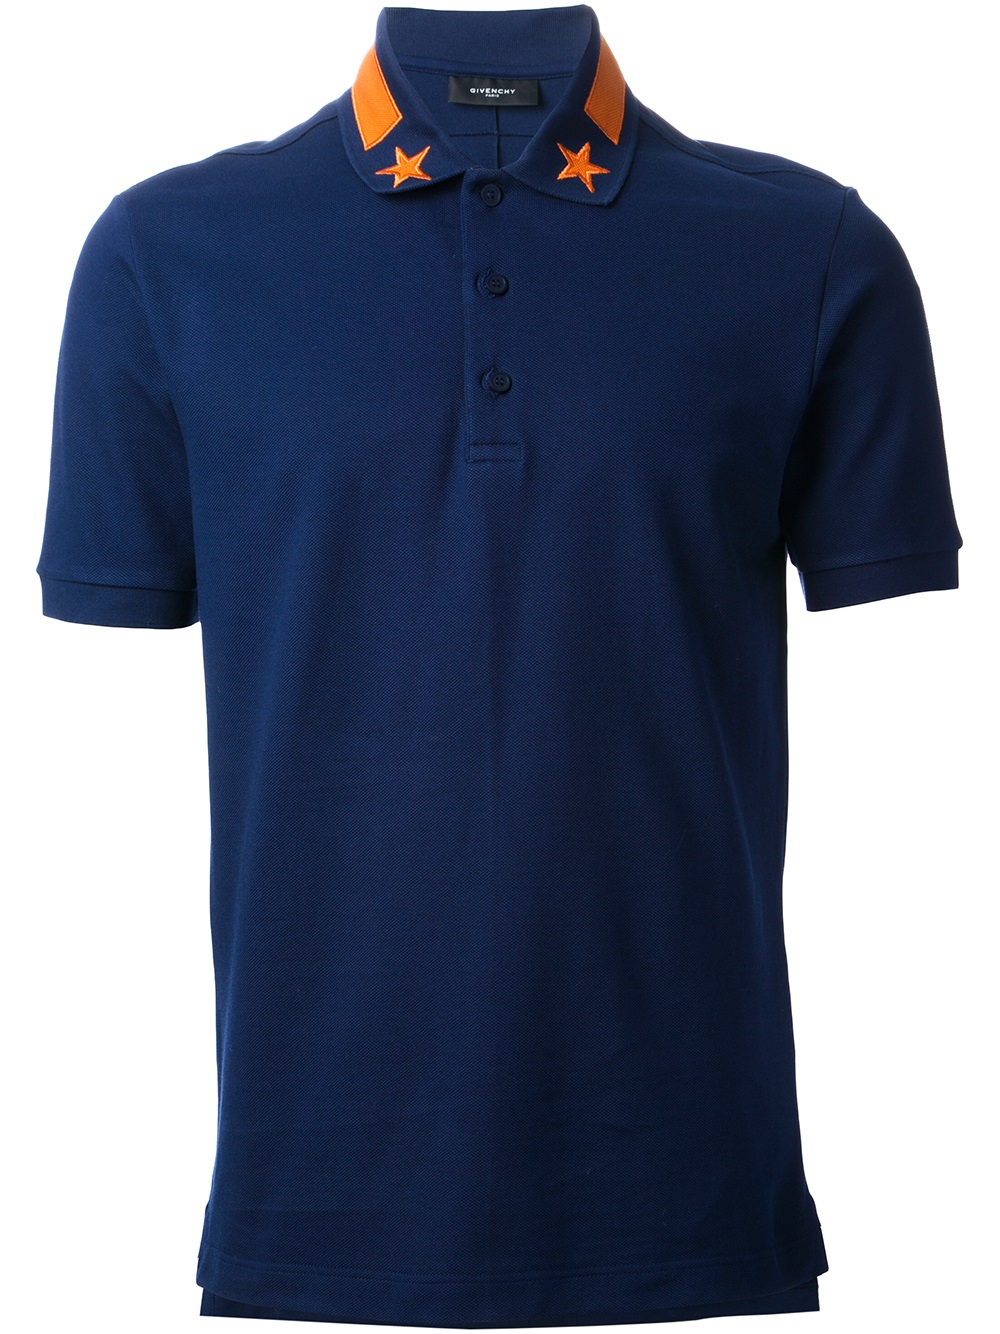 givenchy embroidered polo shirt in blue for men lyst